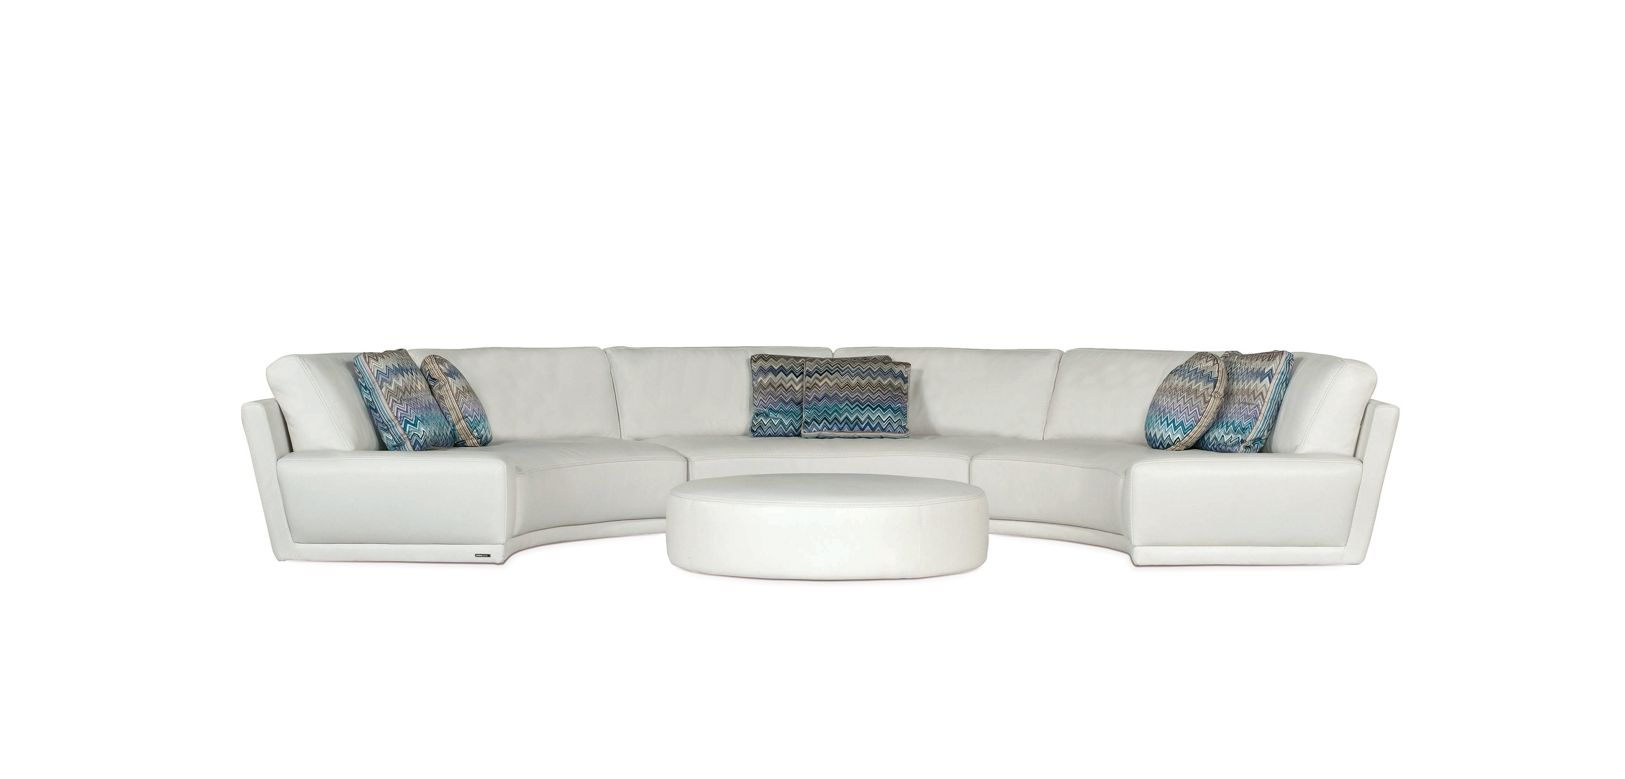 Canap composable arrondi solstice roche bobois - Canape arrondi design ...